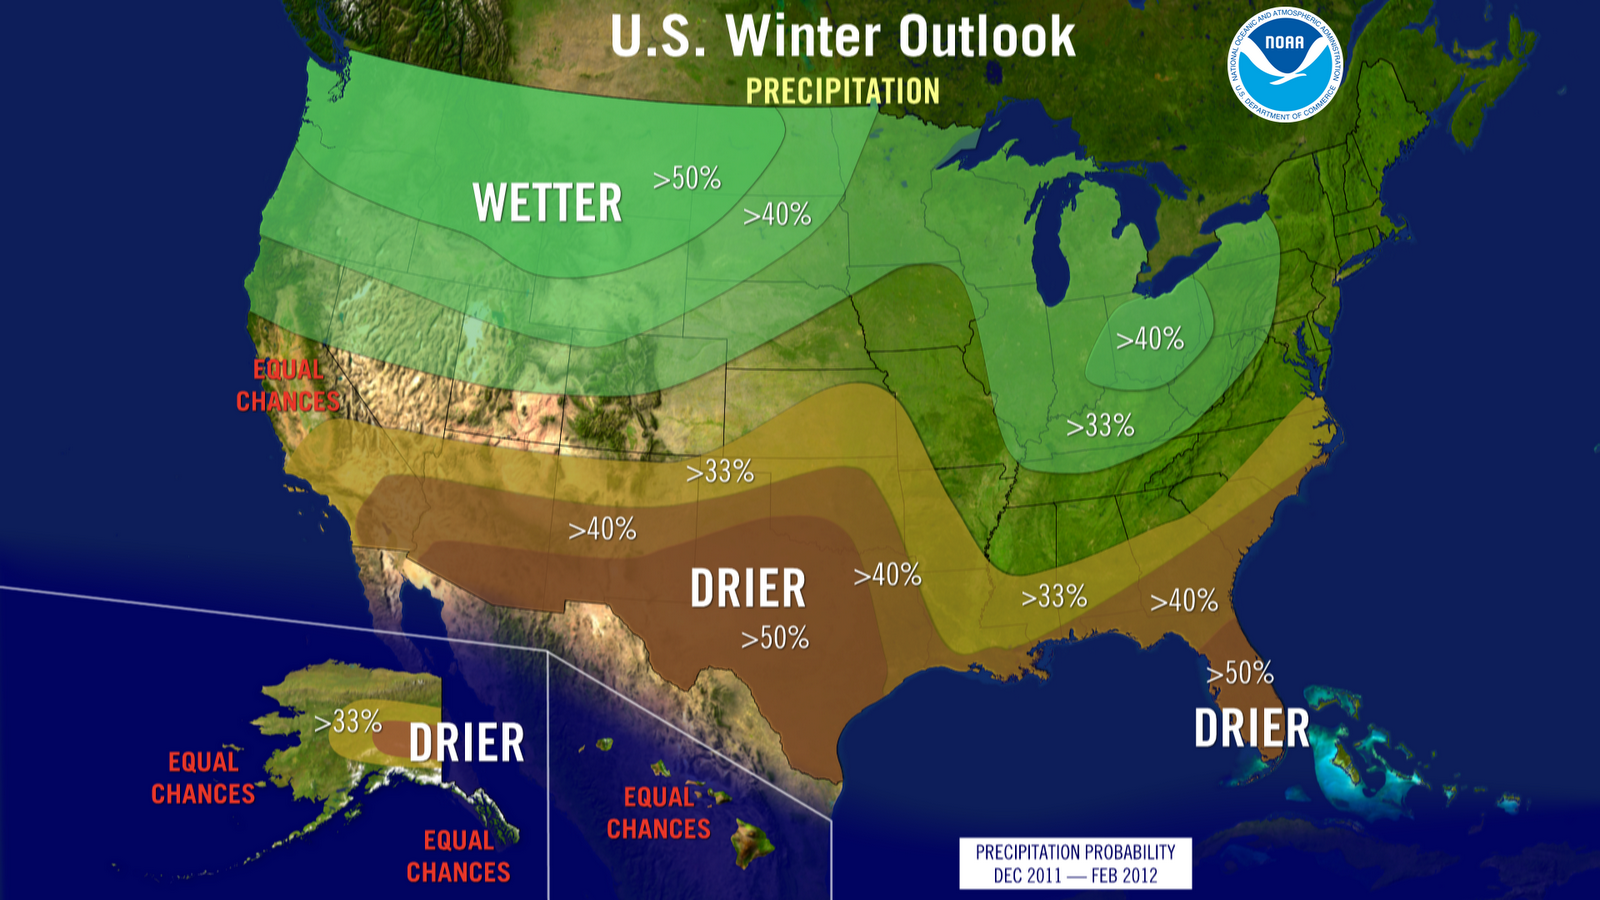 NWS NOAA Winter Precipitation Outlook.